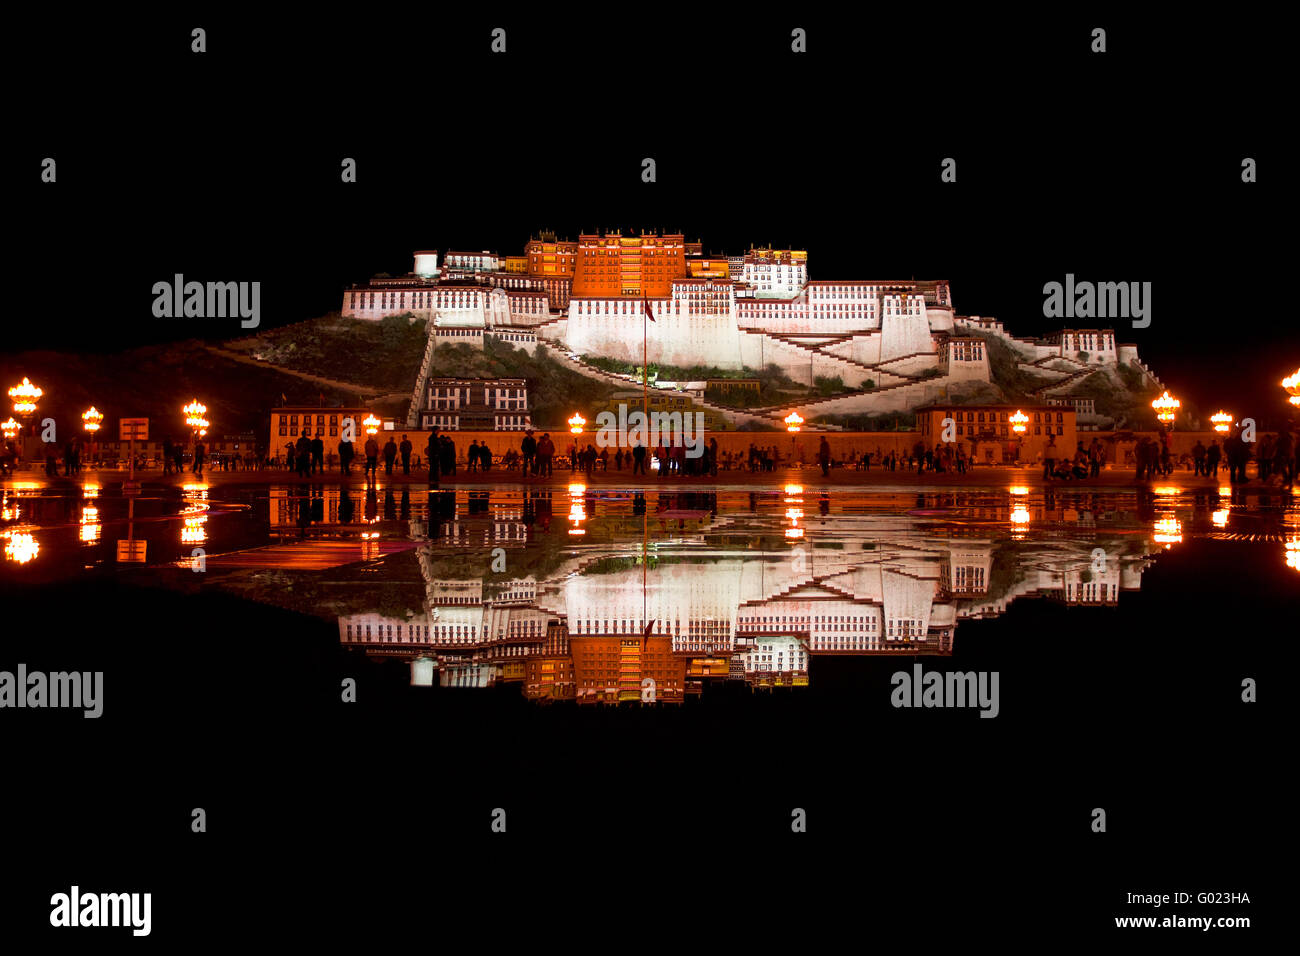 Potala Palace and reflection in pool of water. - Stock Image